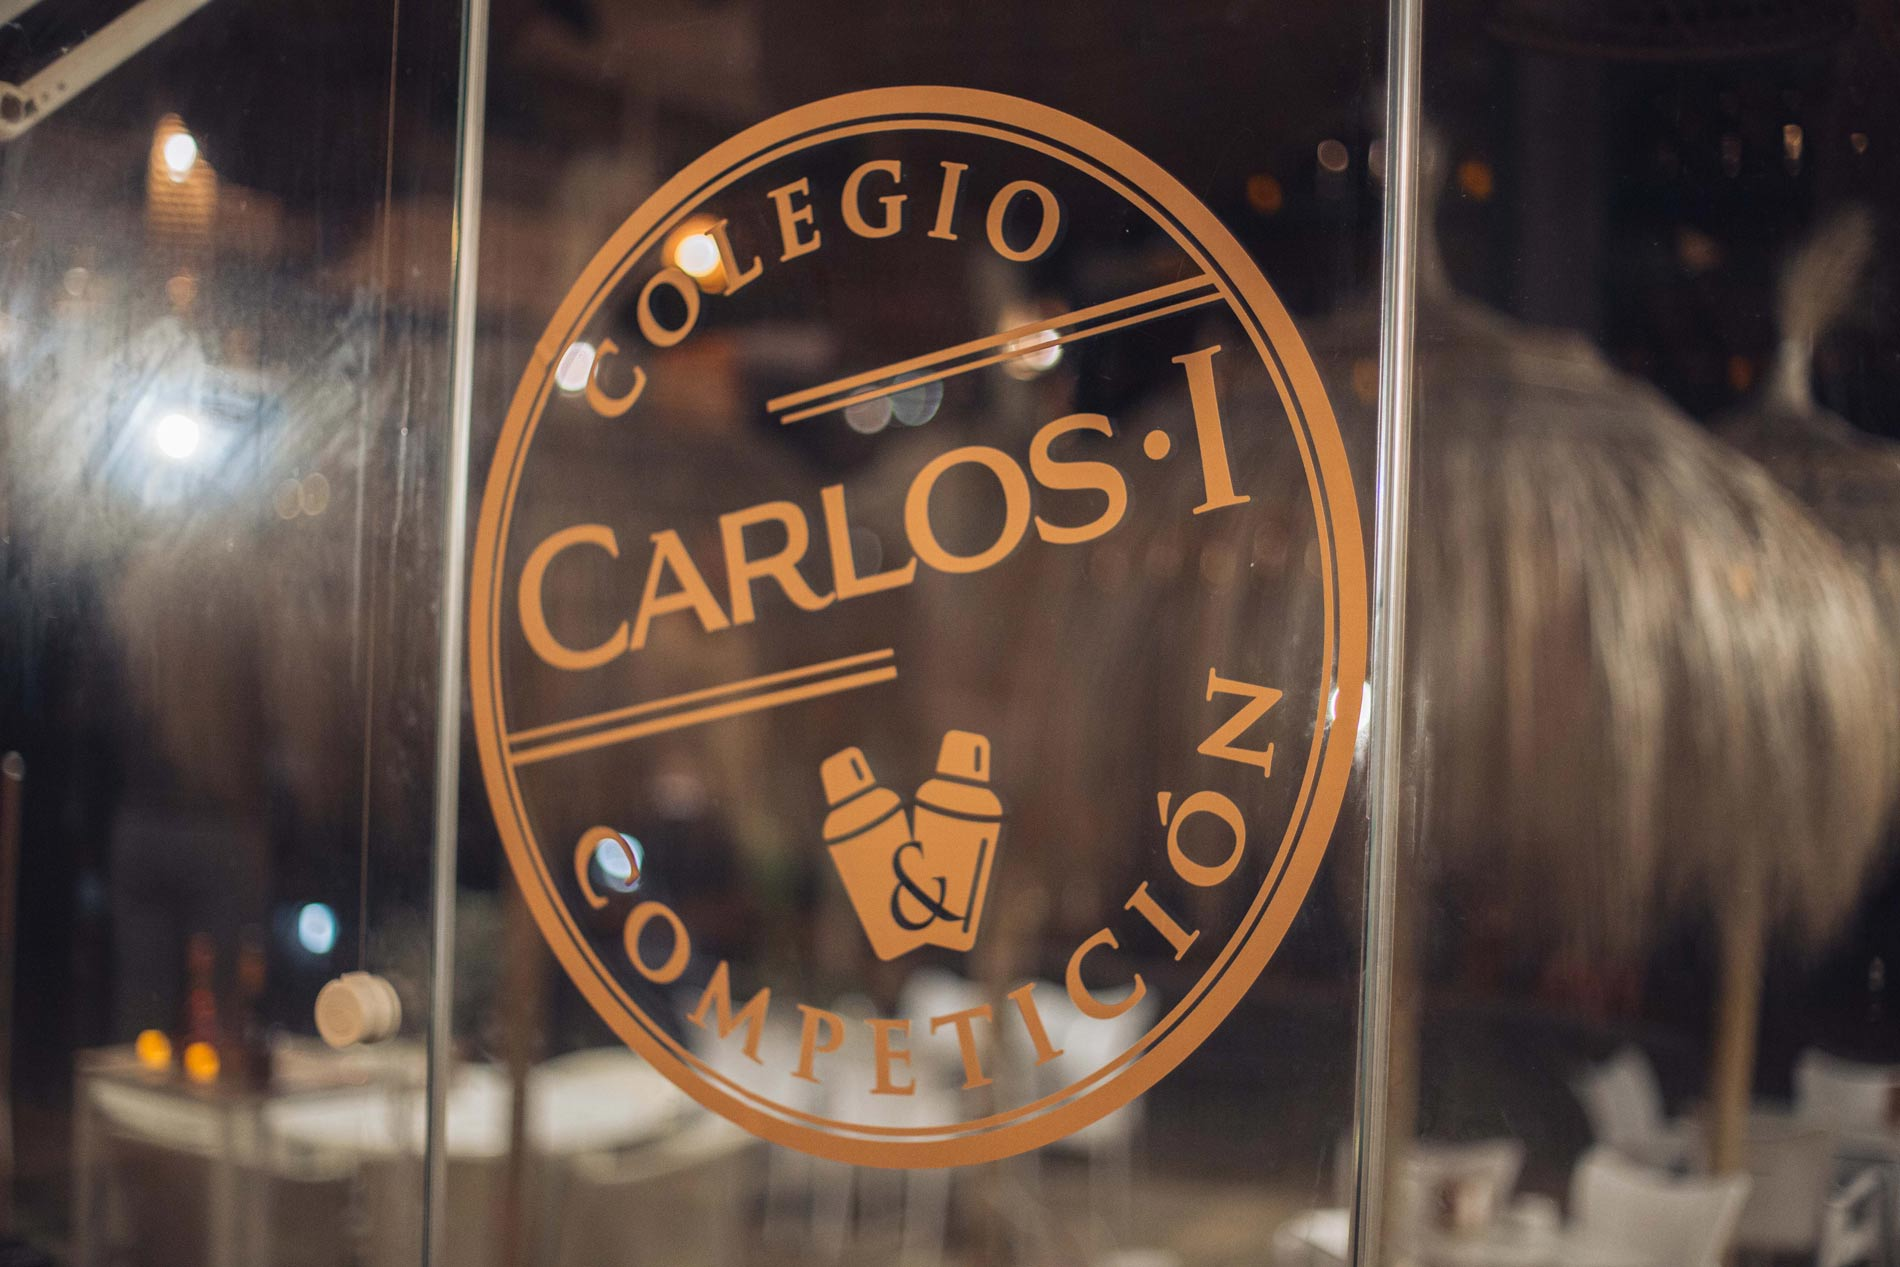 Carlos I Colegio Brandy Competition 2019